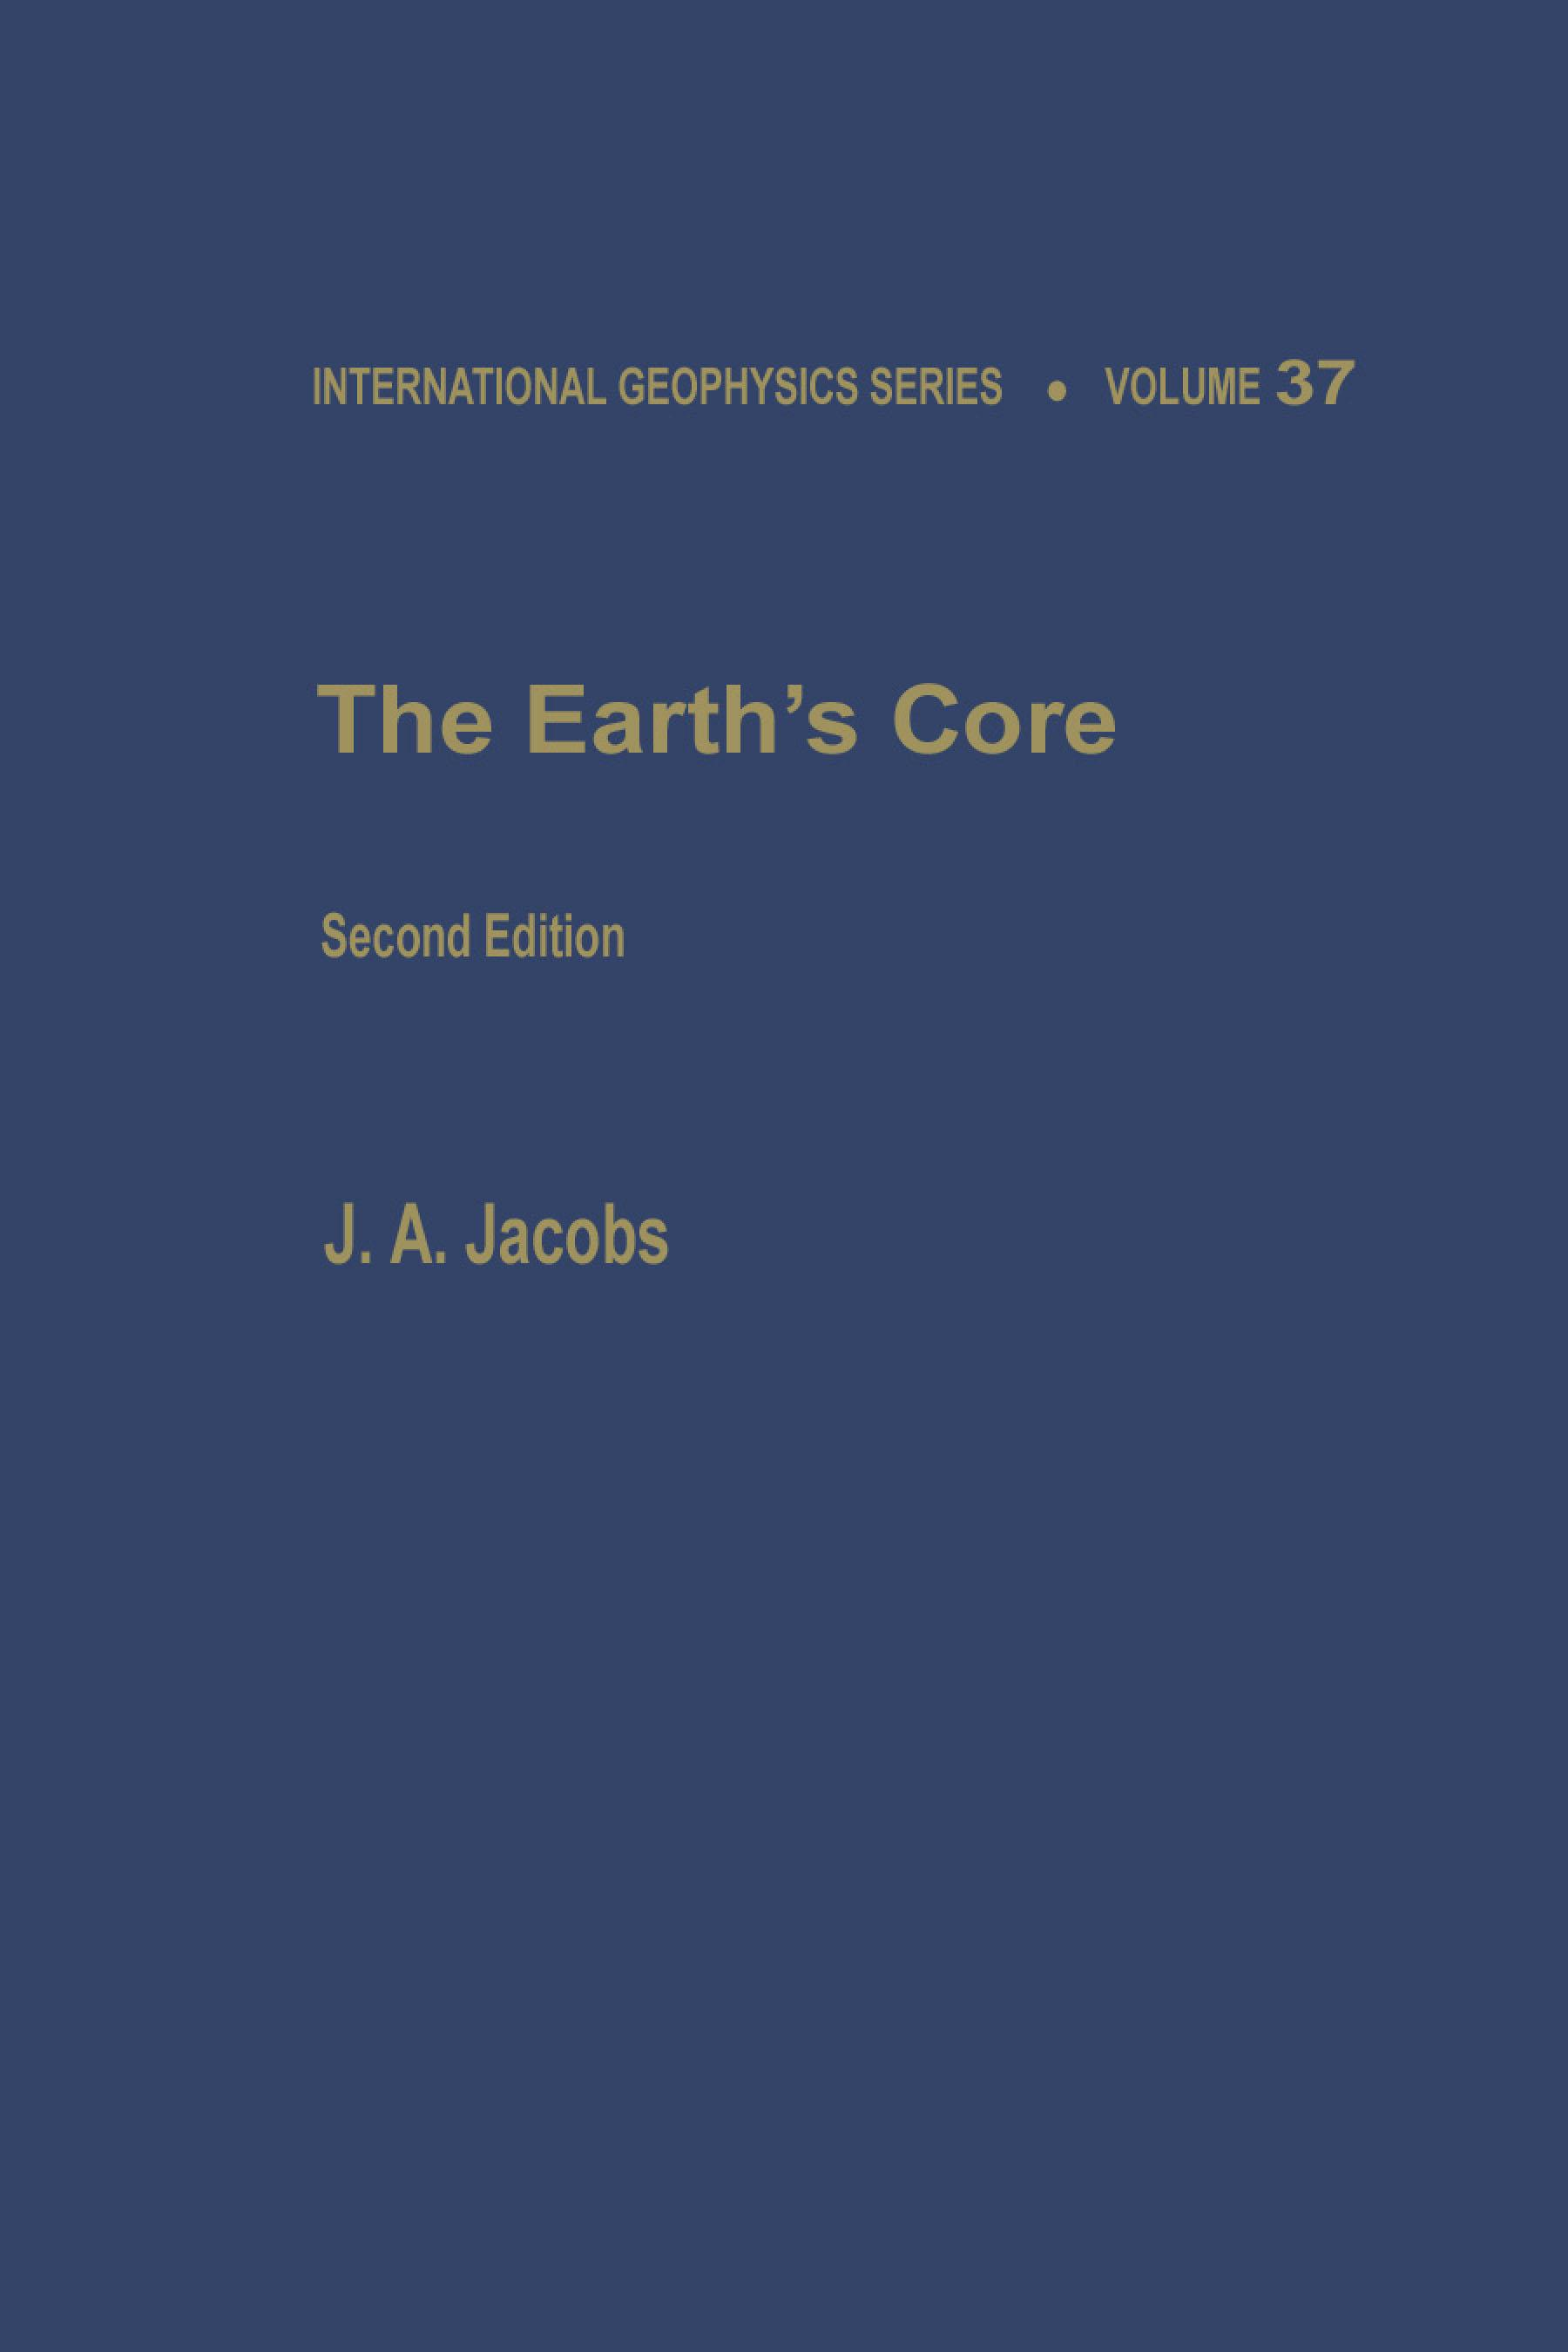 The Earth's Core